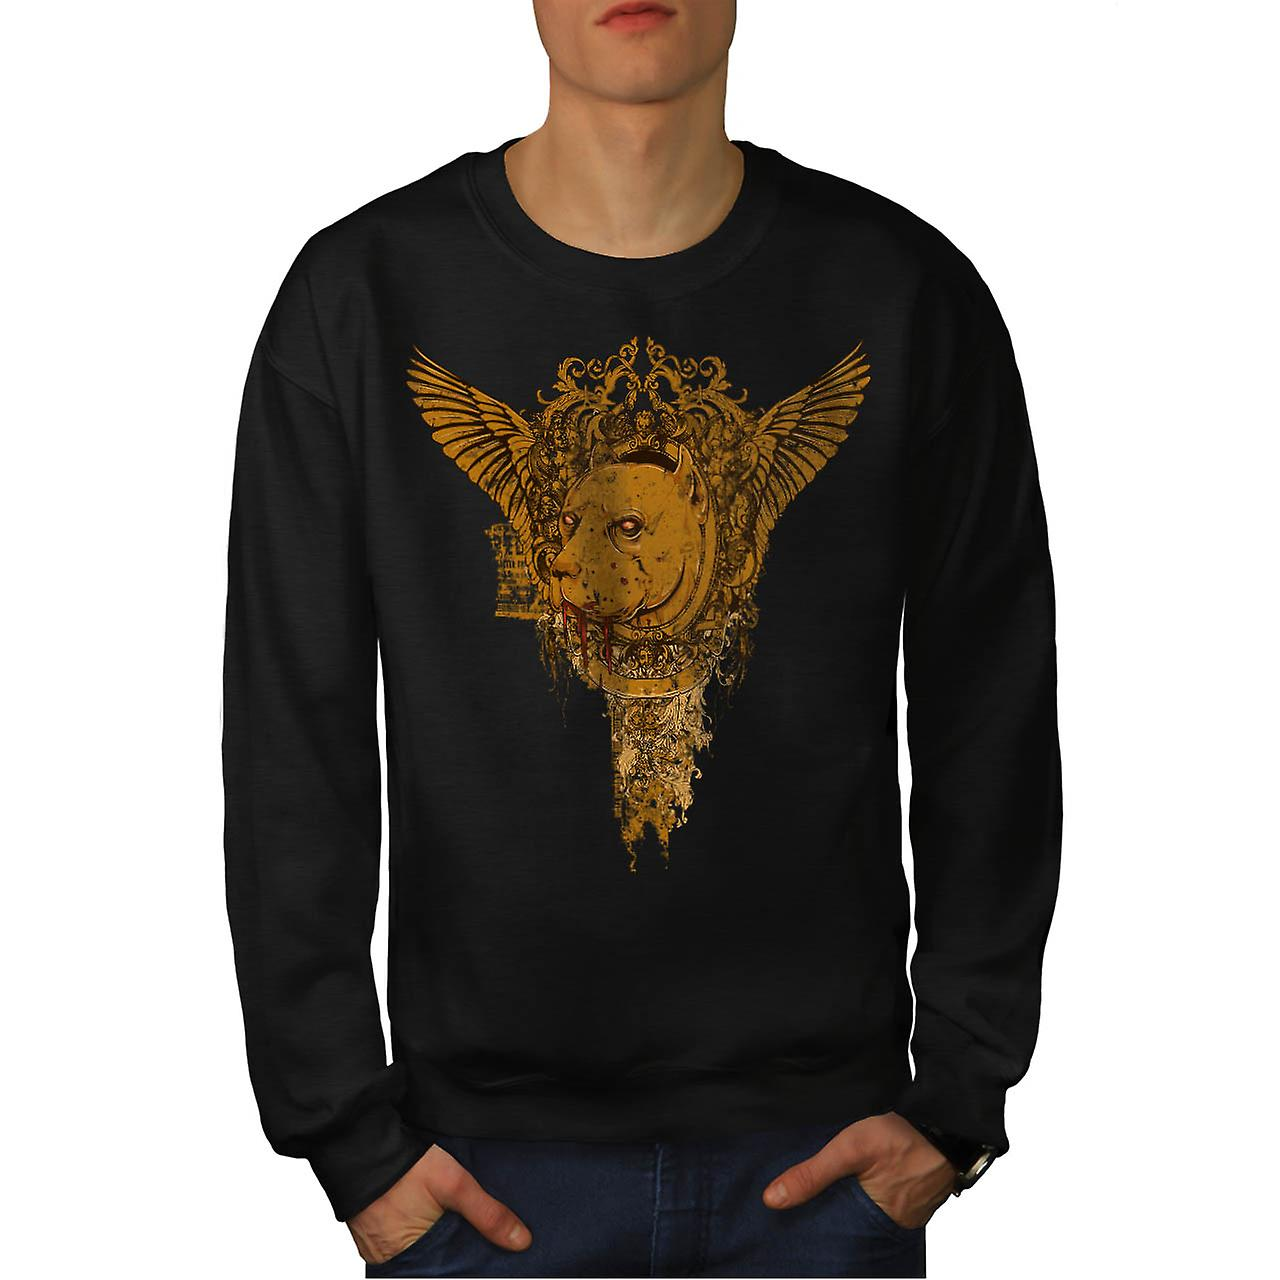 Blood Dog Bite Fear Horror Hound Men Black Sweatshirt | Wellcoda